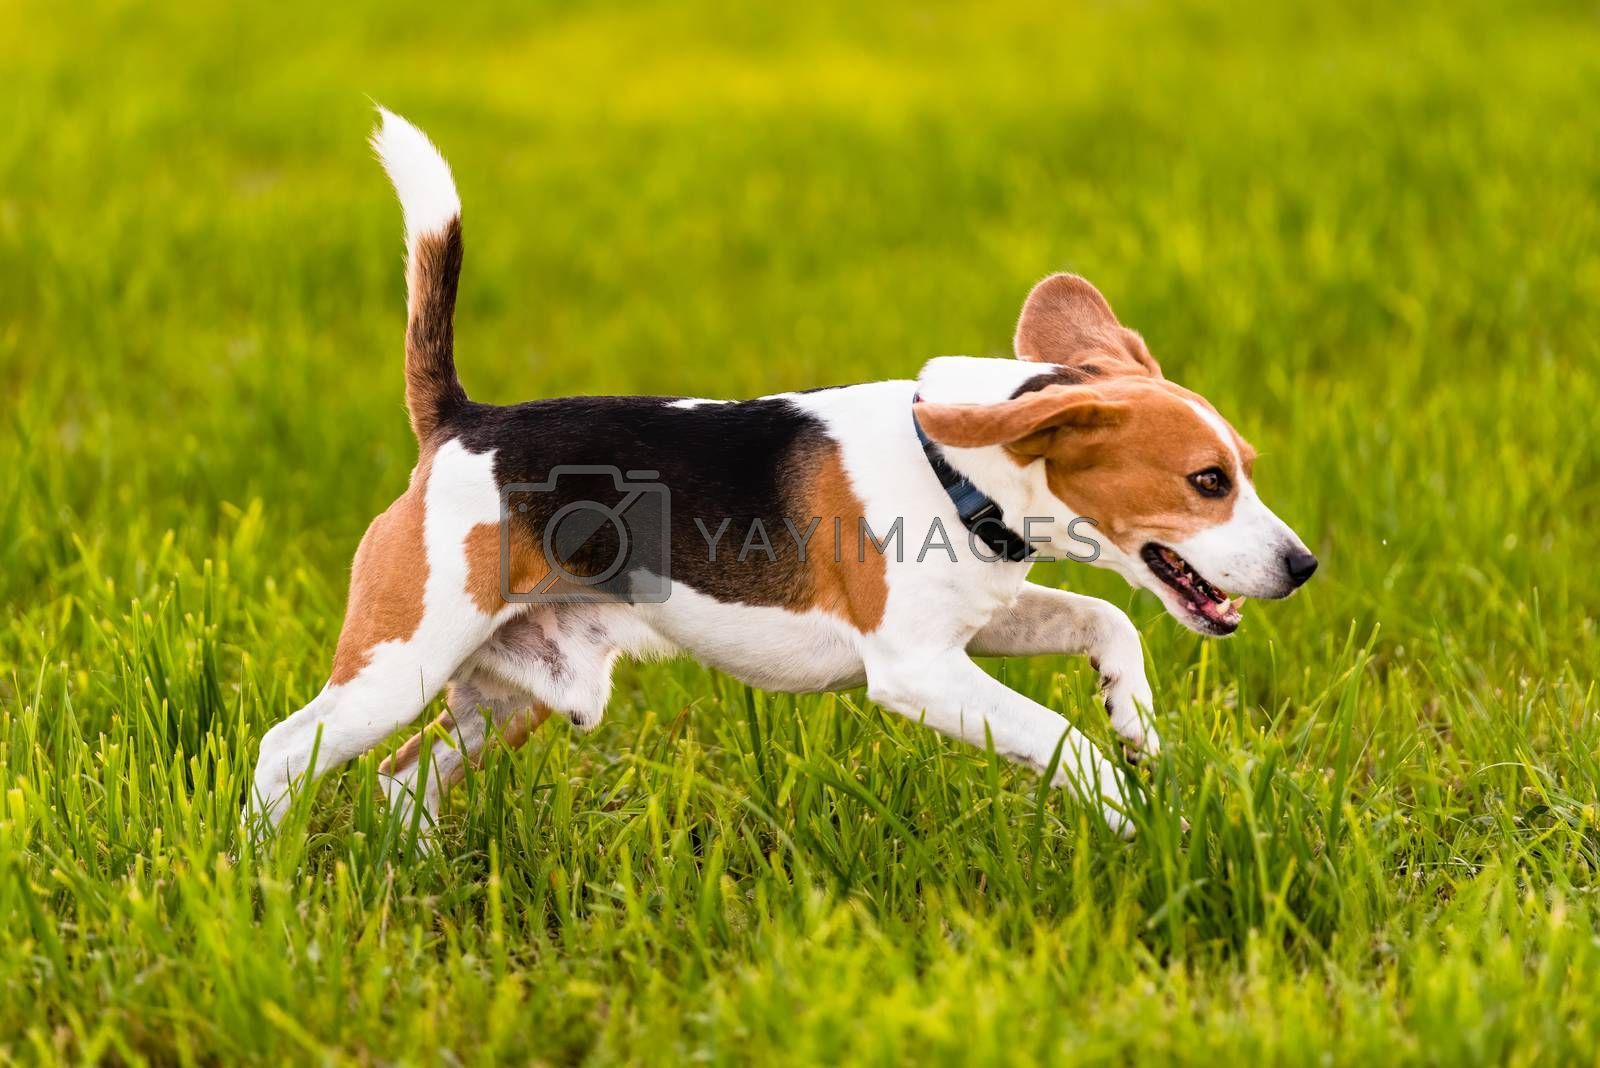 Dog Beagle running and jumping with tongue out through green grass field in a spring. Side shoot.